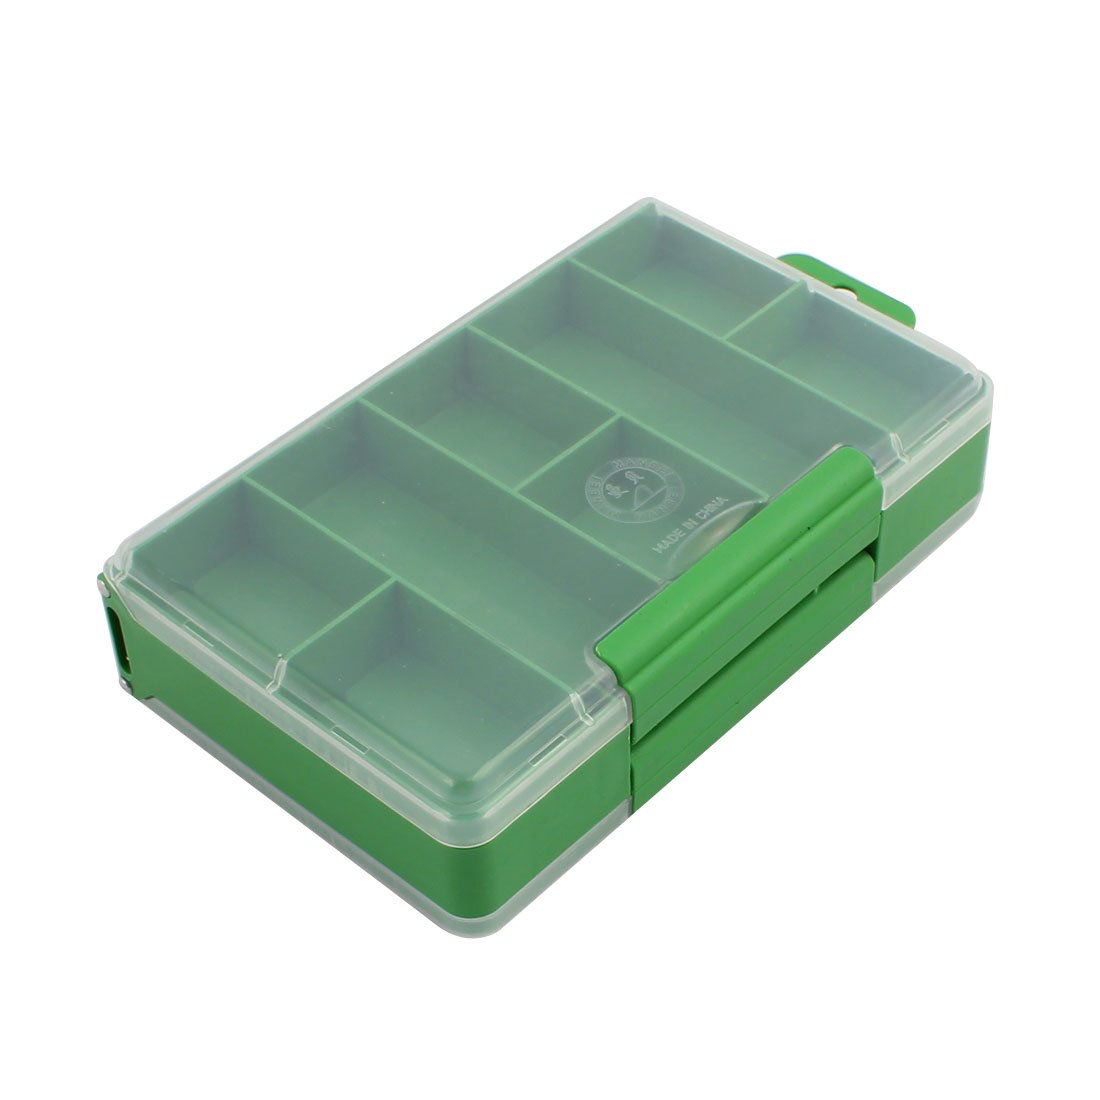 uxcell 2-layer Tool Boxes Length 150mm Weight 93mm Height 41mm Double-sided 16 Slots Portable